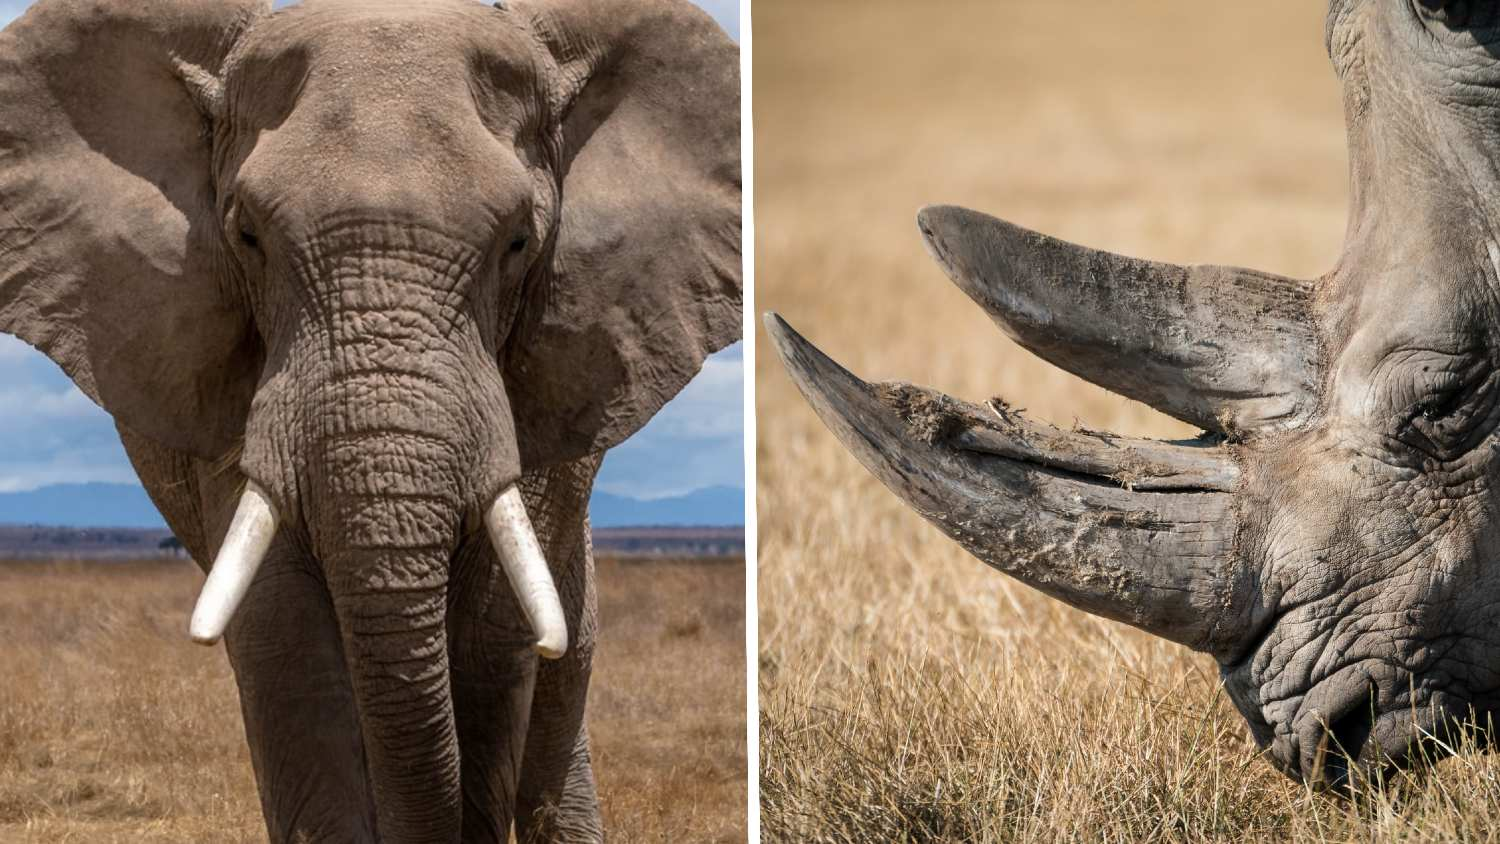 Washington DC Just Banned the Sale of Elephant Ivory and Rhino Horn